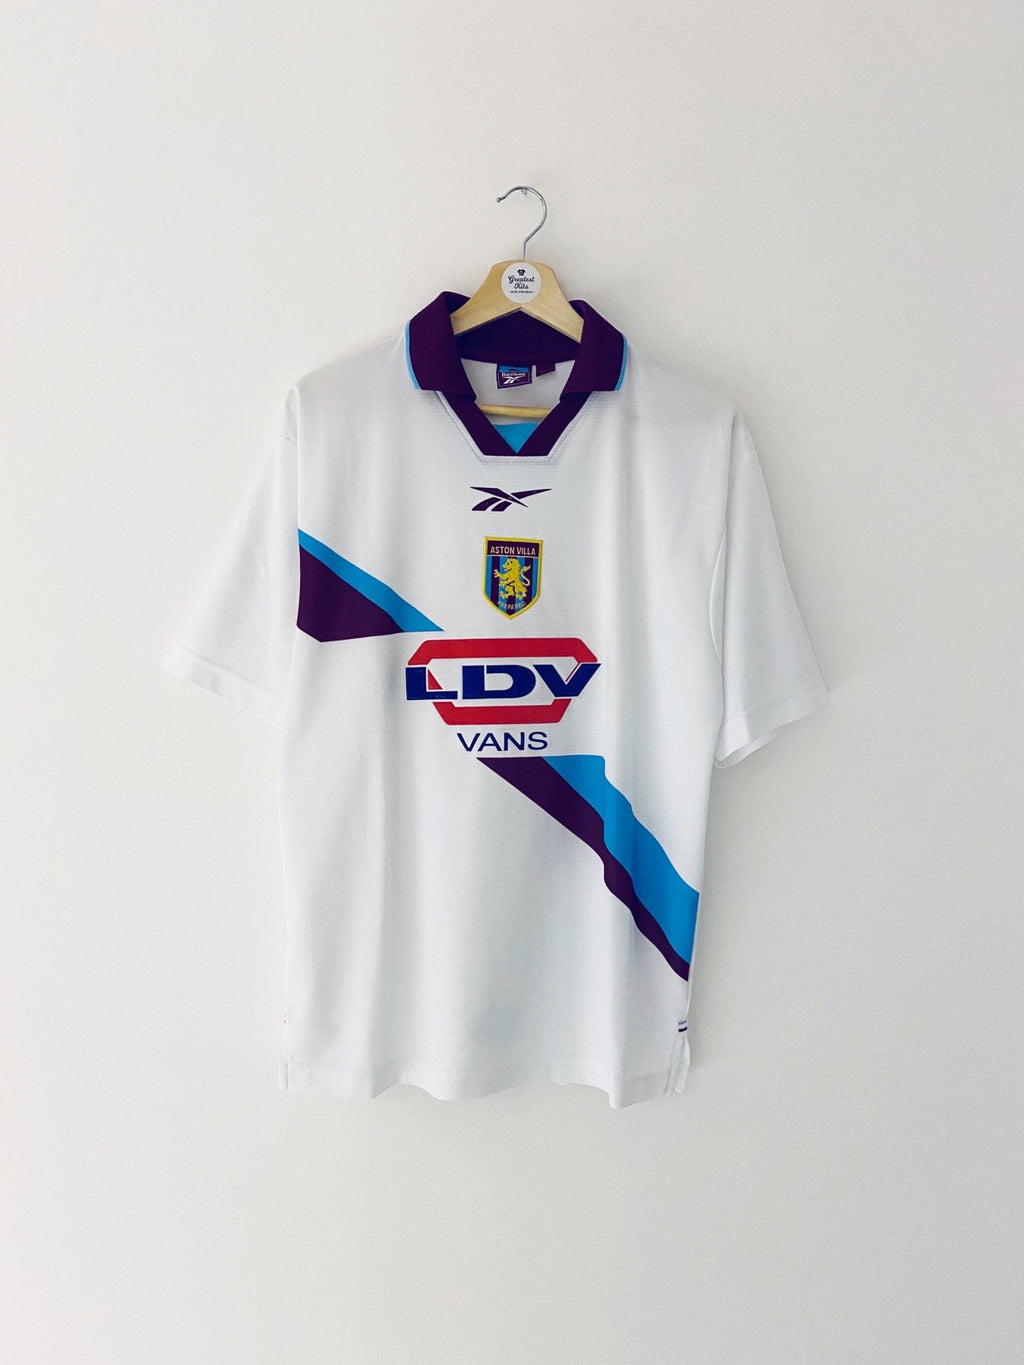 1999/00 Aston Villa Away Shirt (S) 9/10